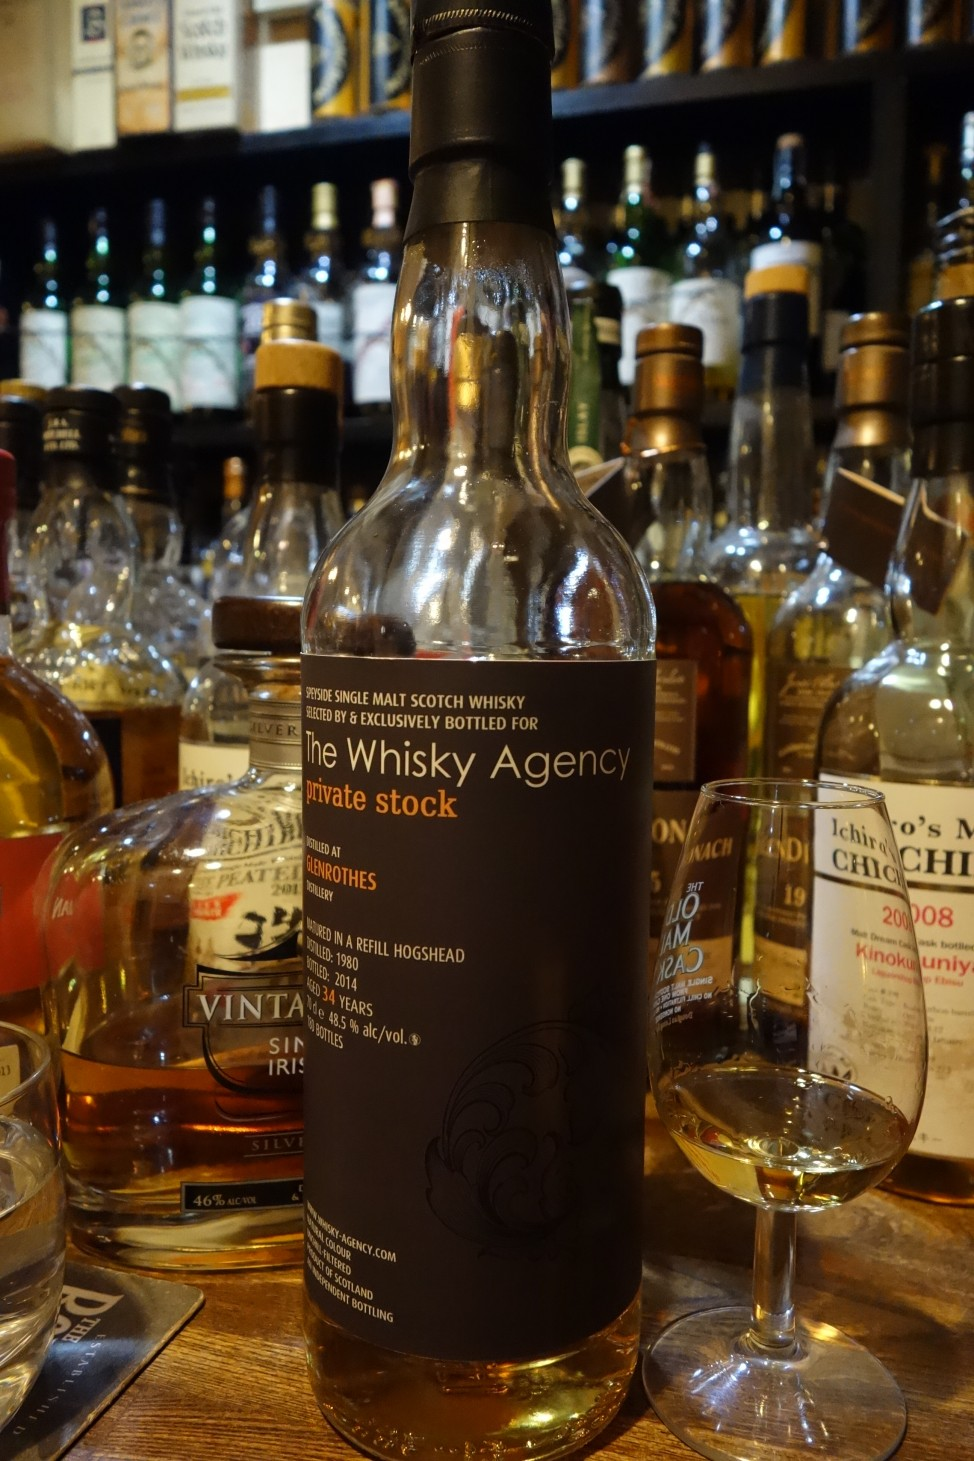 GLENROTHES 1980-2014 34yo THE WHISKY AGENCY private stock